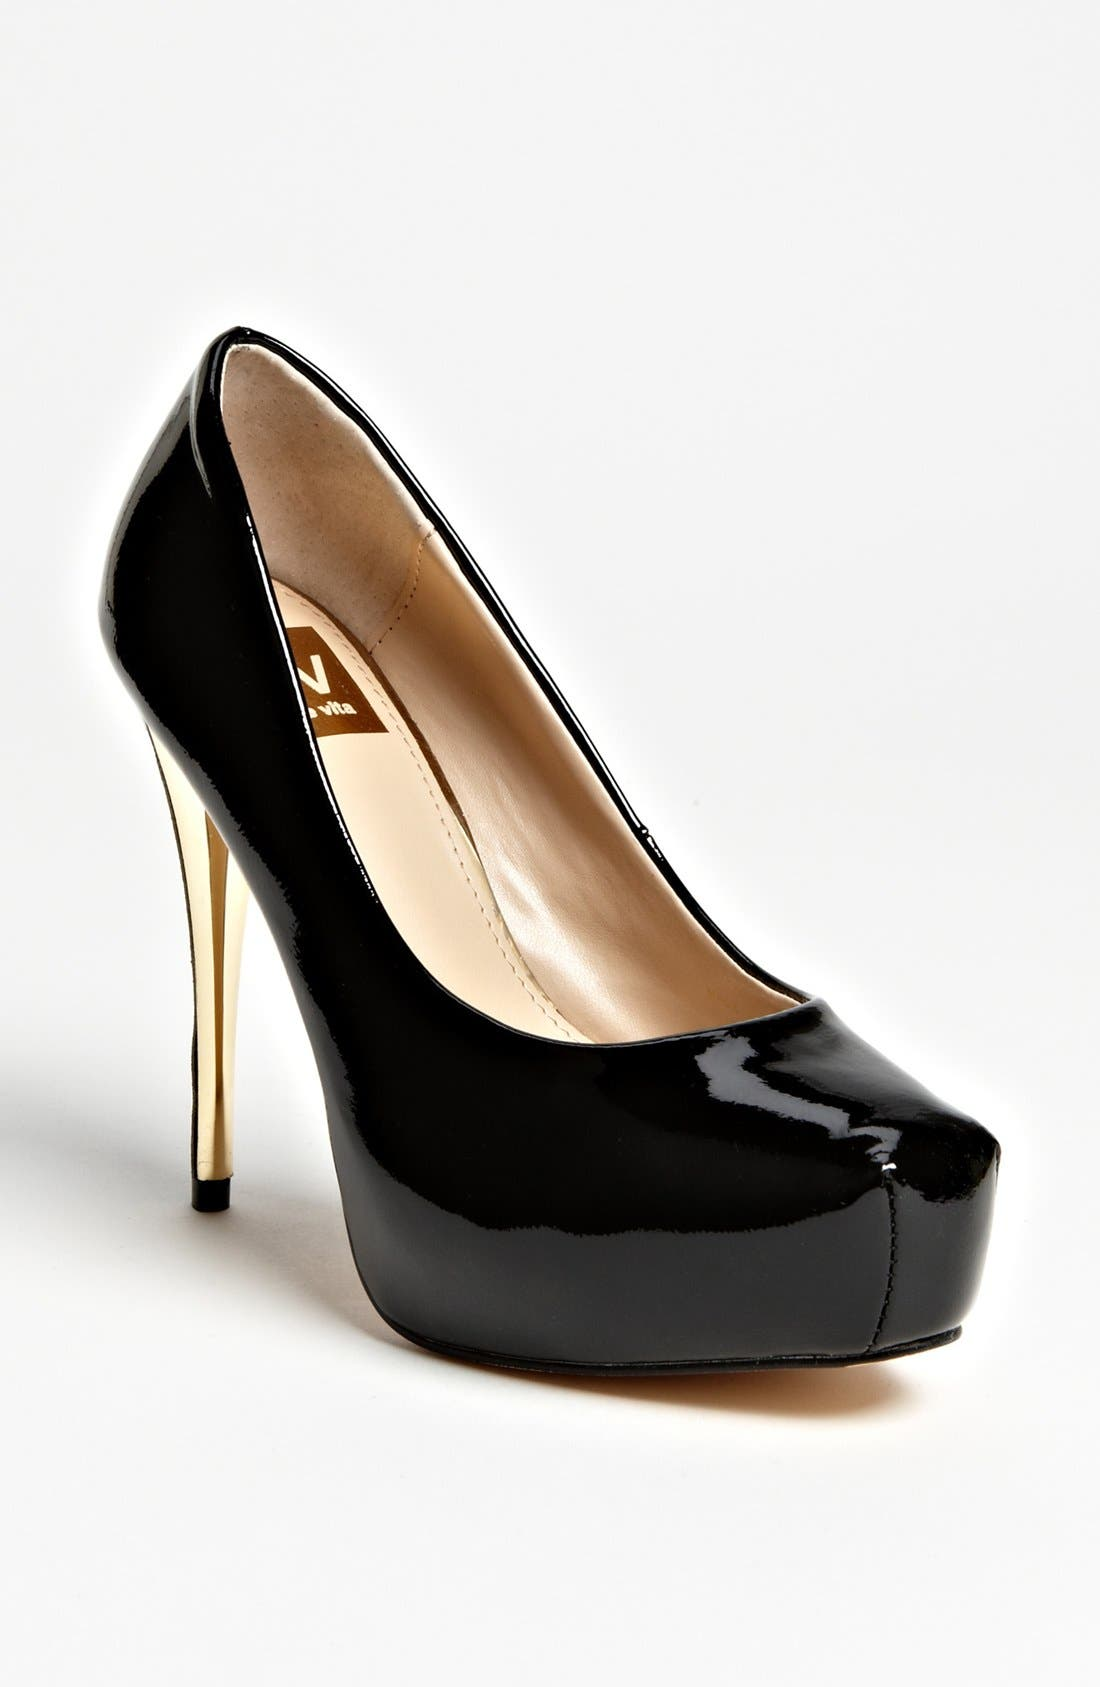 Alternate Image 1 Selected - DV by Dolce Vita 'Beyla' Pump